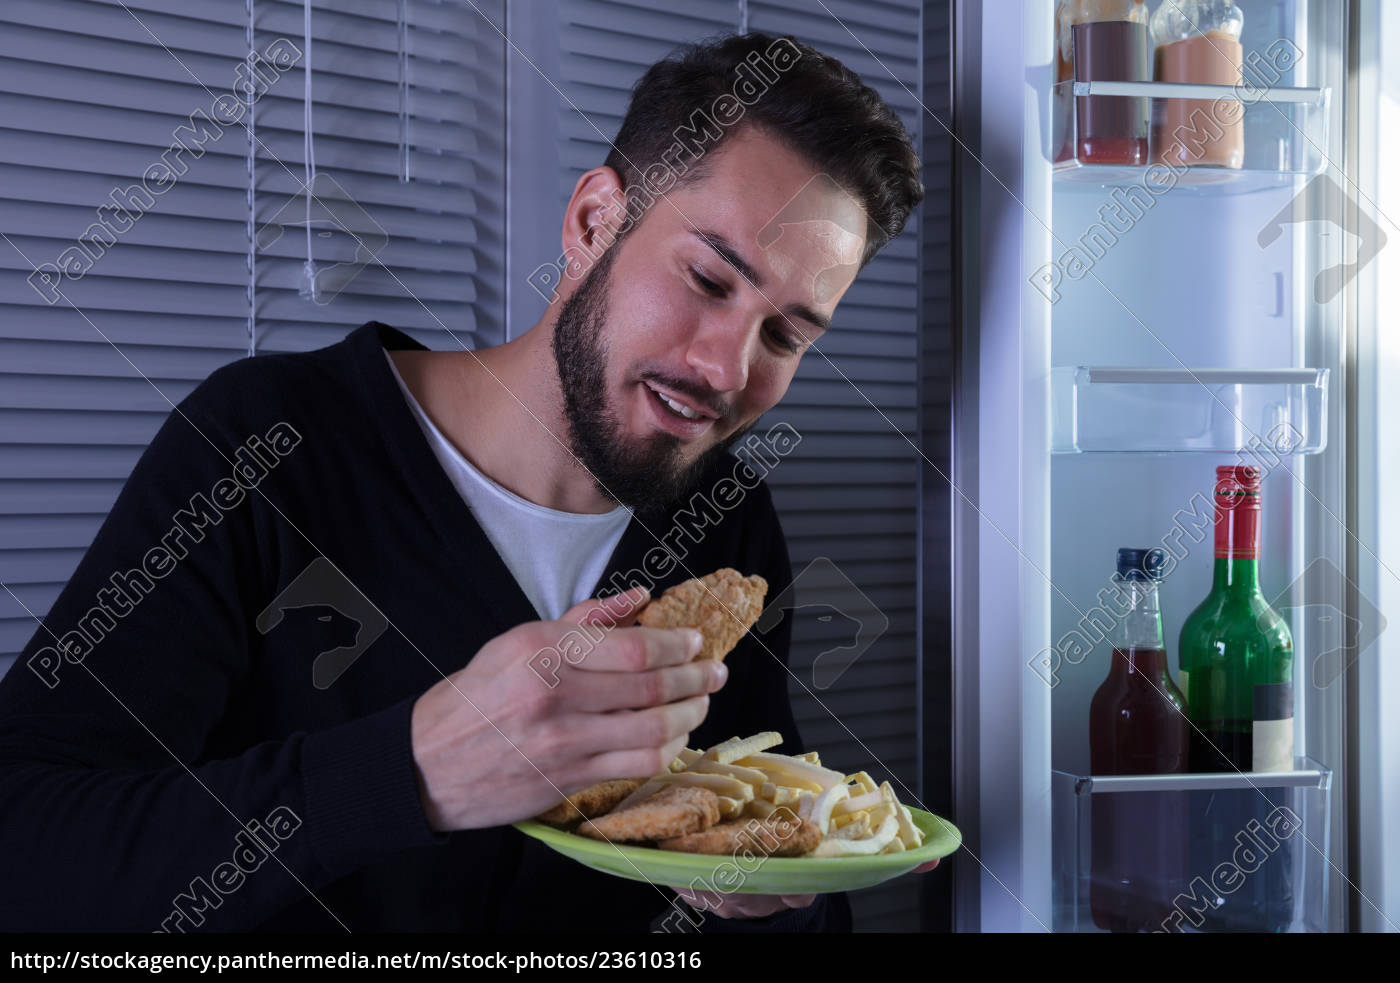 young, man, eating, fried, food - 23610316